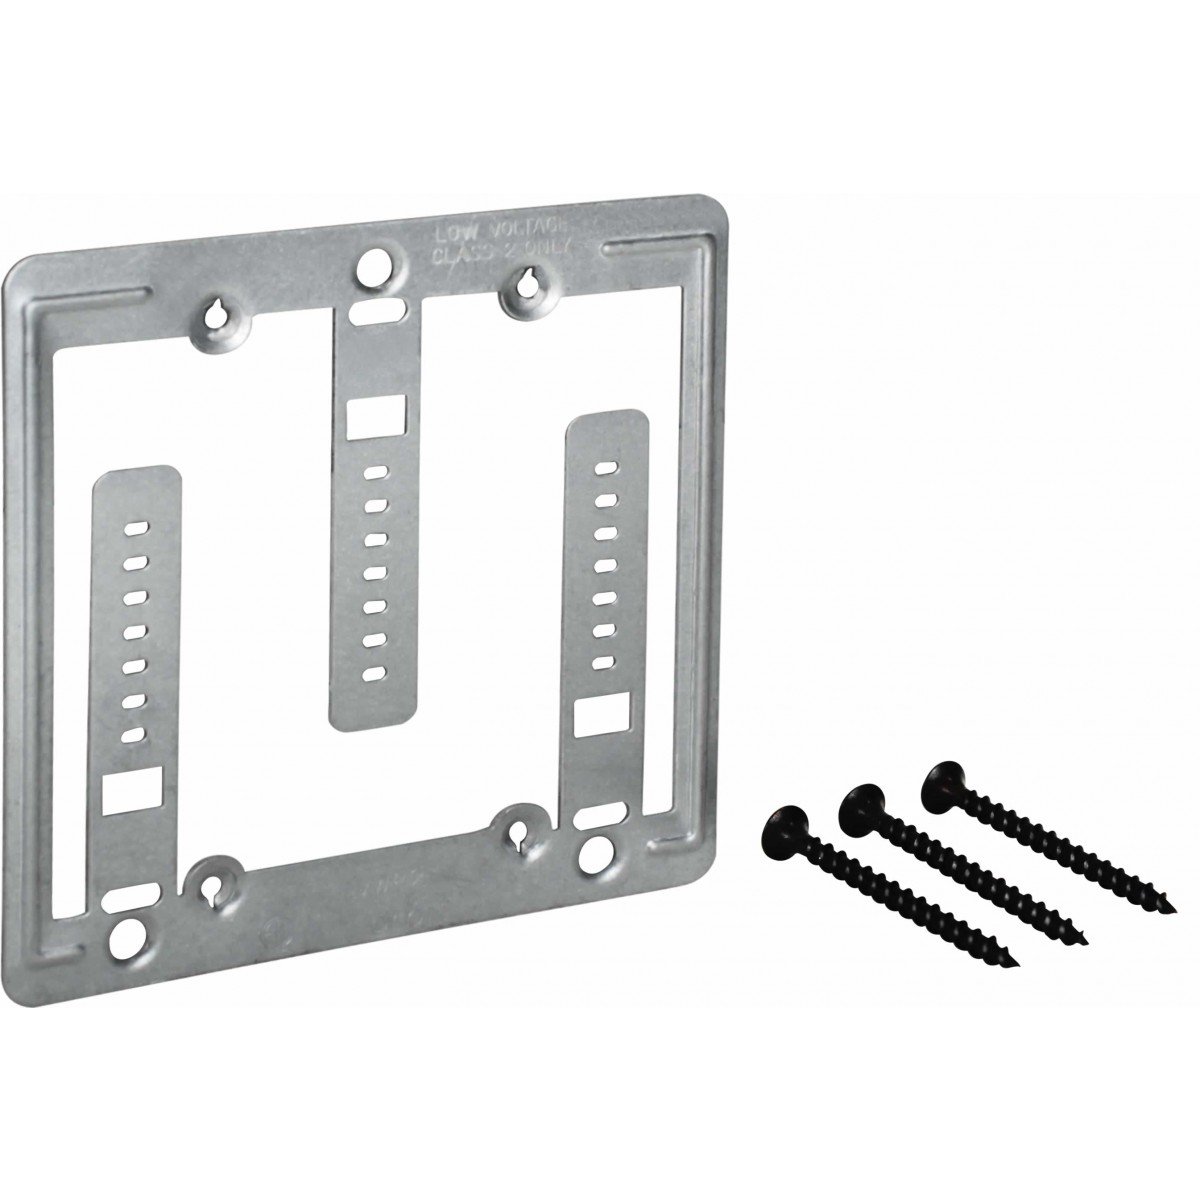 Low Voltage Wall Mounting : Low voltage wall mounting plates